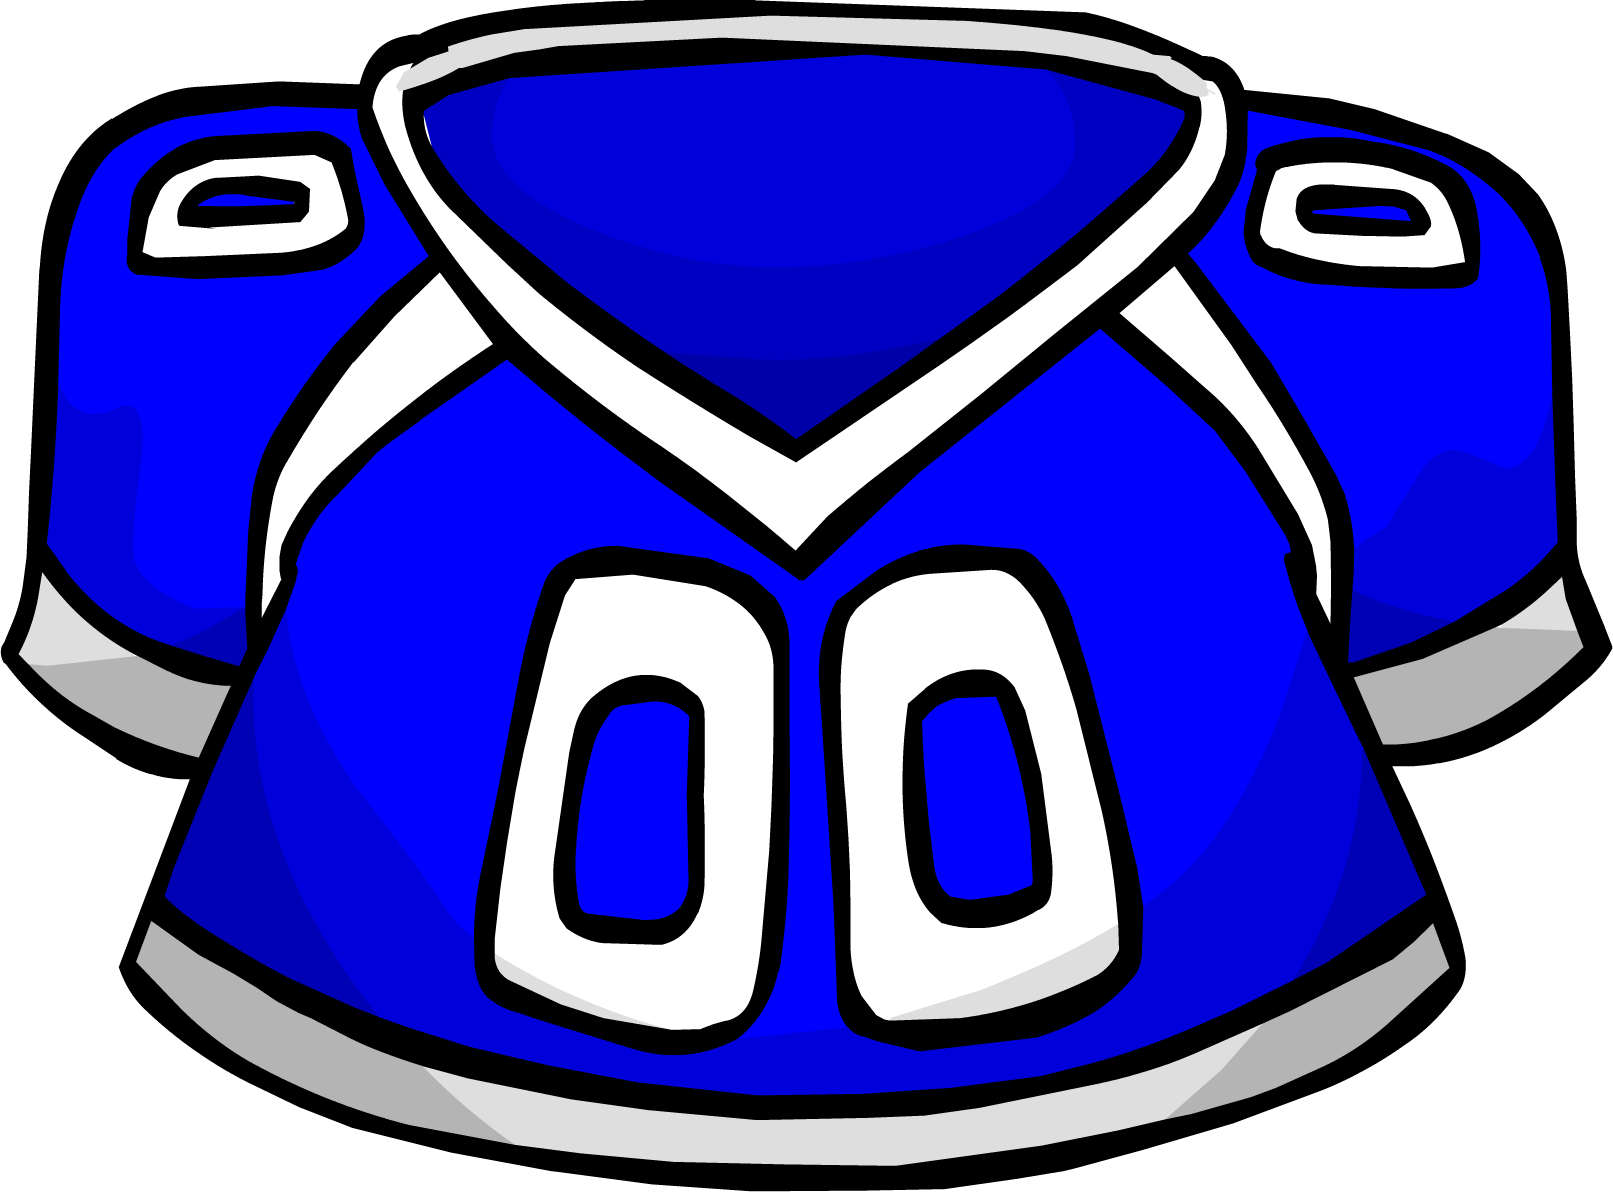 Blue football jersey clipart clip art freeuse stock Free Football Uniform Cliparts, Download Free Clip Art, Free Clip ... clip art freeuse stock